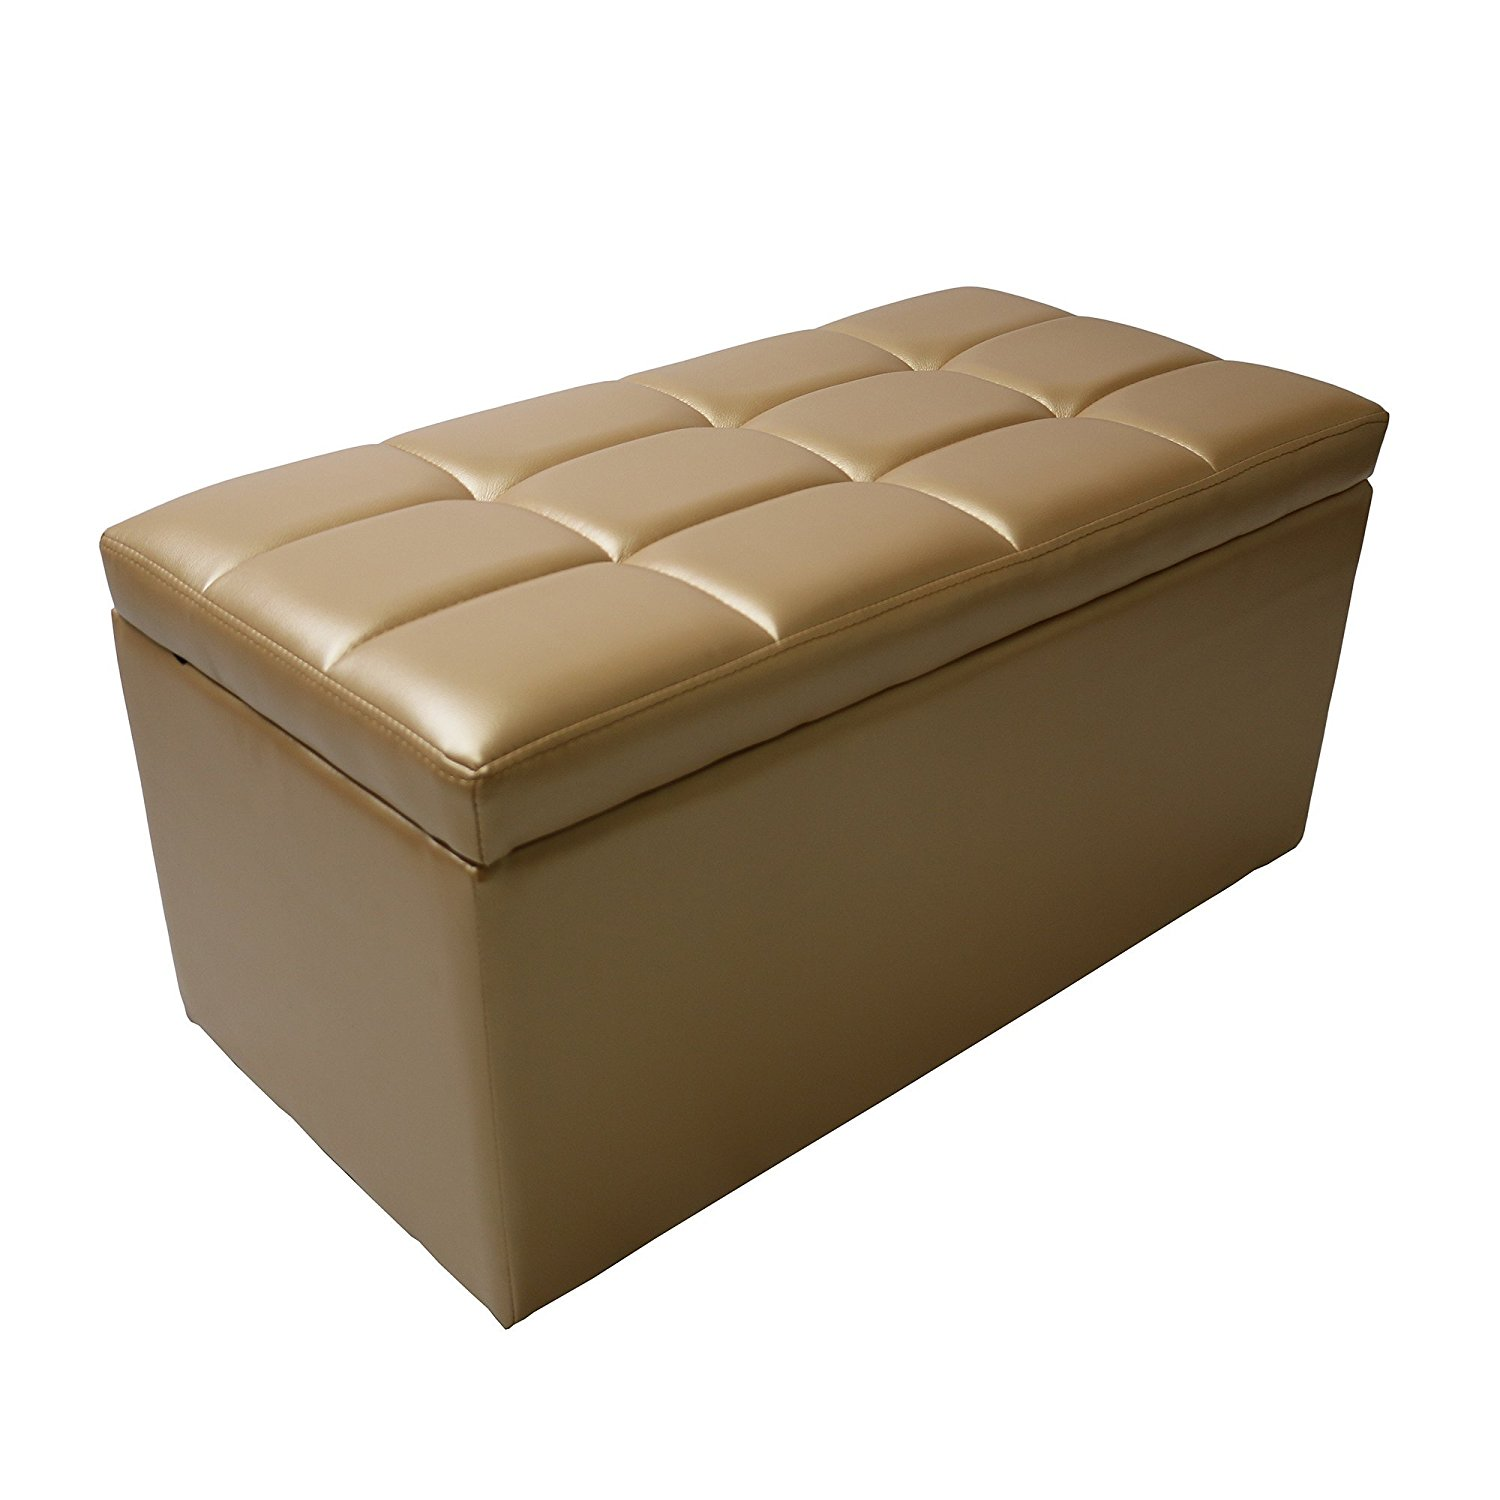 31'' Rectangle Unfold Leather hinged Storage Ottoman Bench Footstool Cocktail Seat Black by